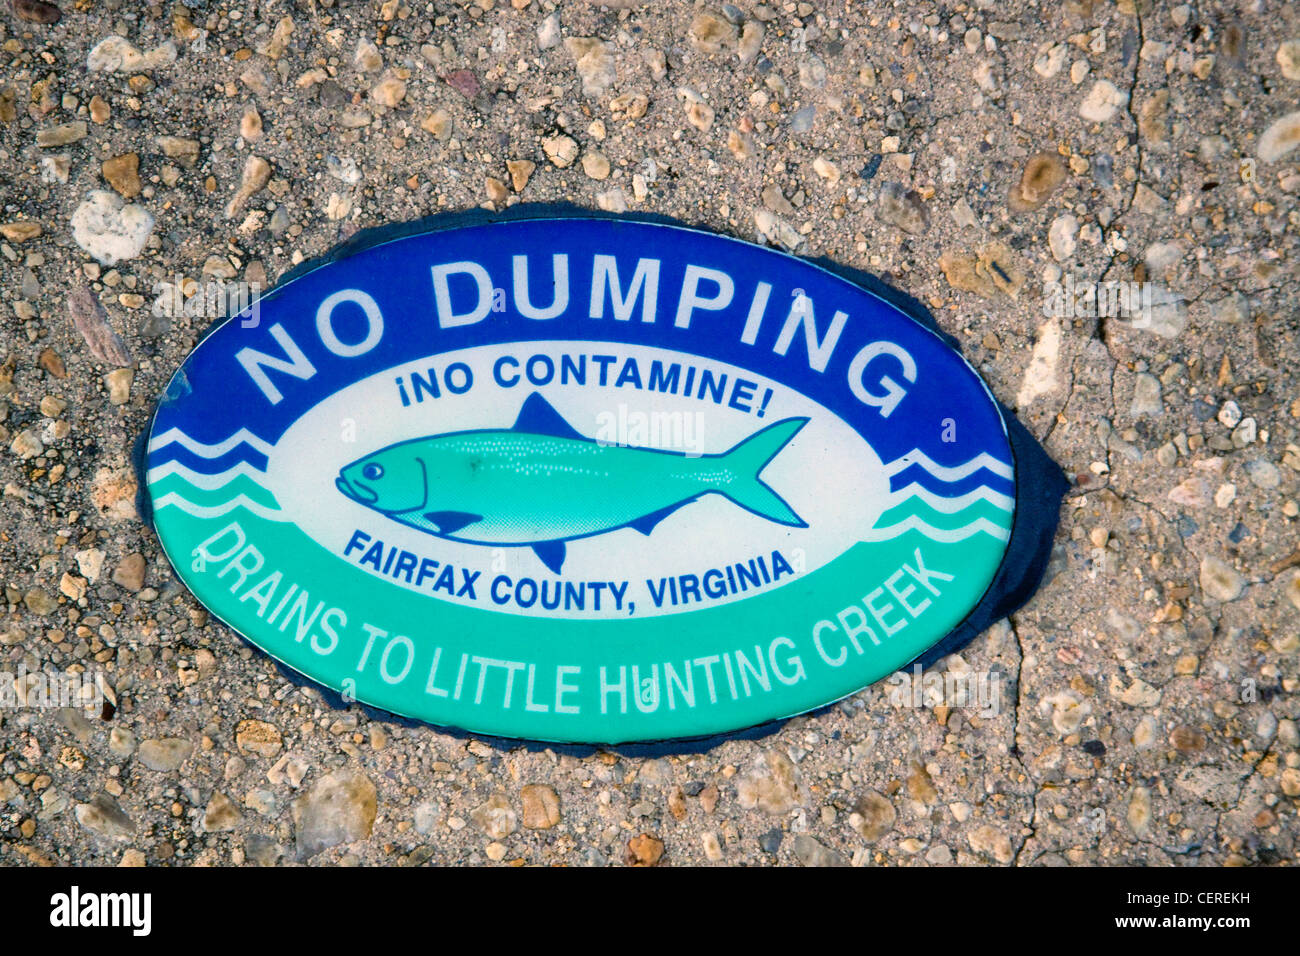 Fairfax County Virginia No Dumping Drains to Little Hunting Creek sign on top of a storm water drainage catch basin - Stock Image